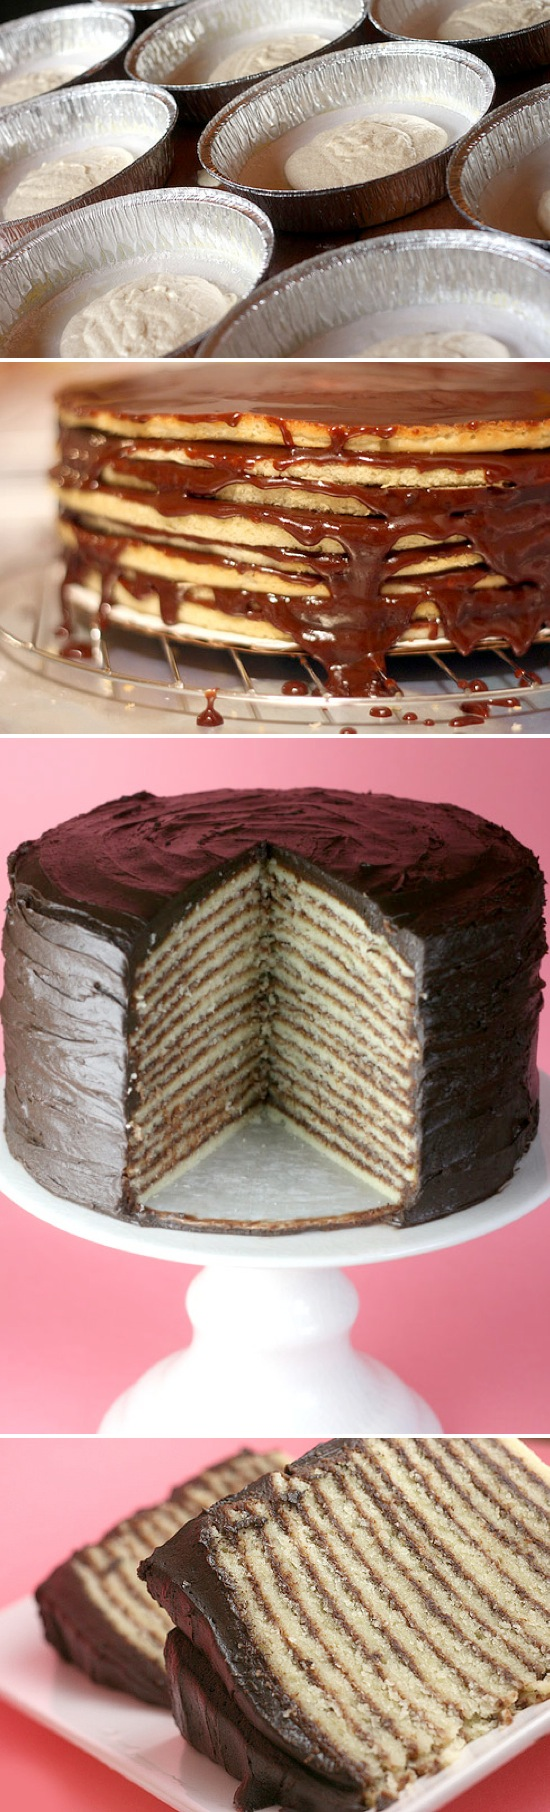 Lots-Of-Layers-Cake